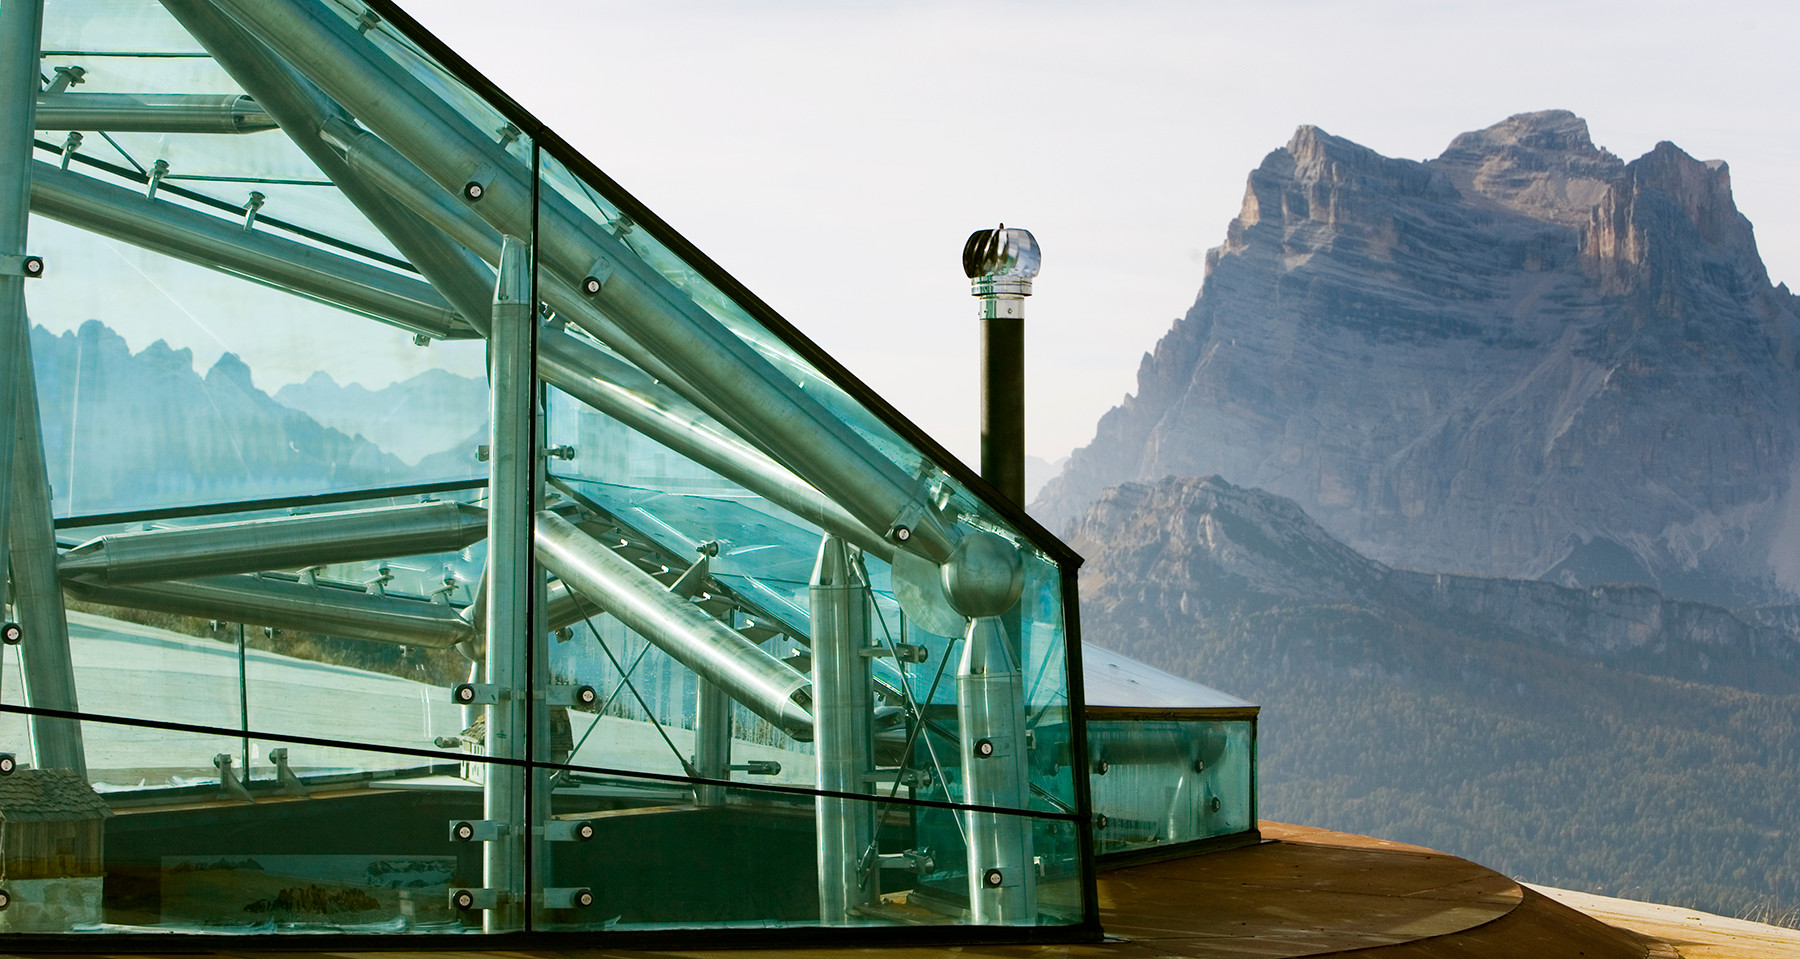 Messner Mountain Museum, Monte Pelmo, Museum in the Clouds, Dolomites